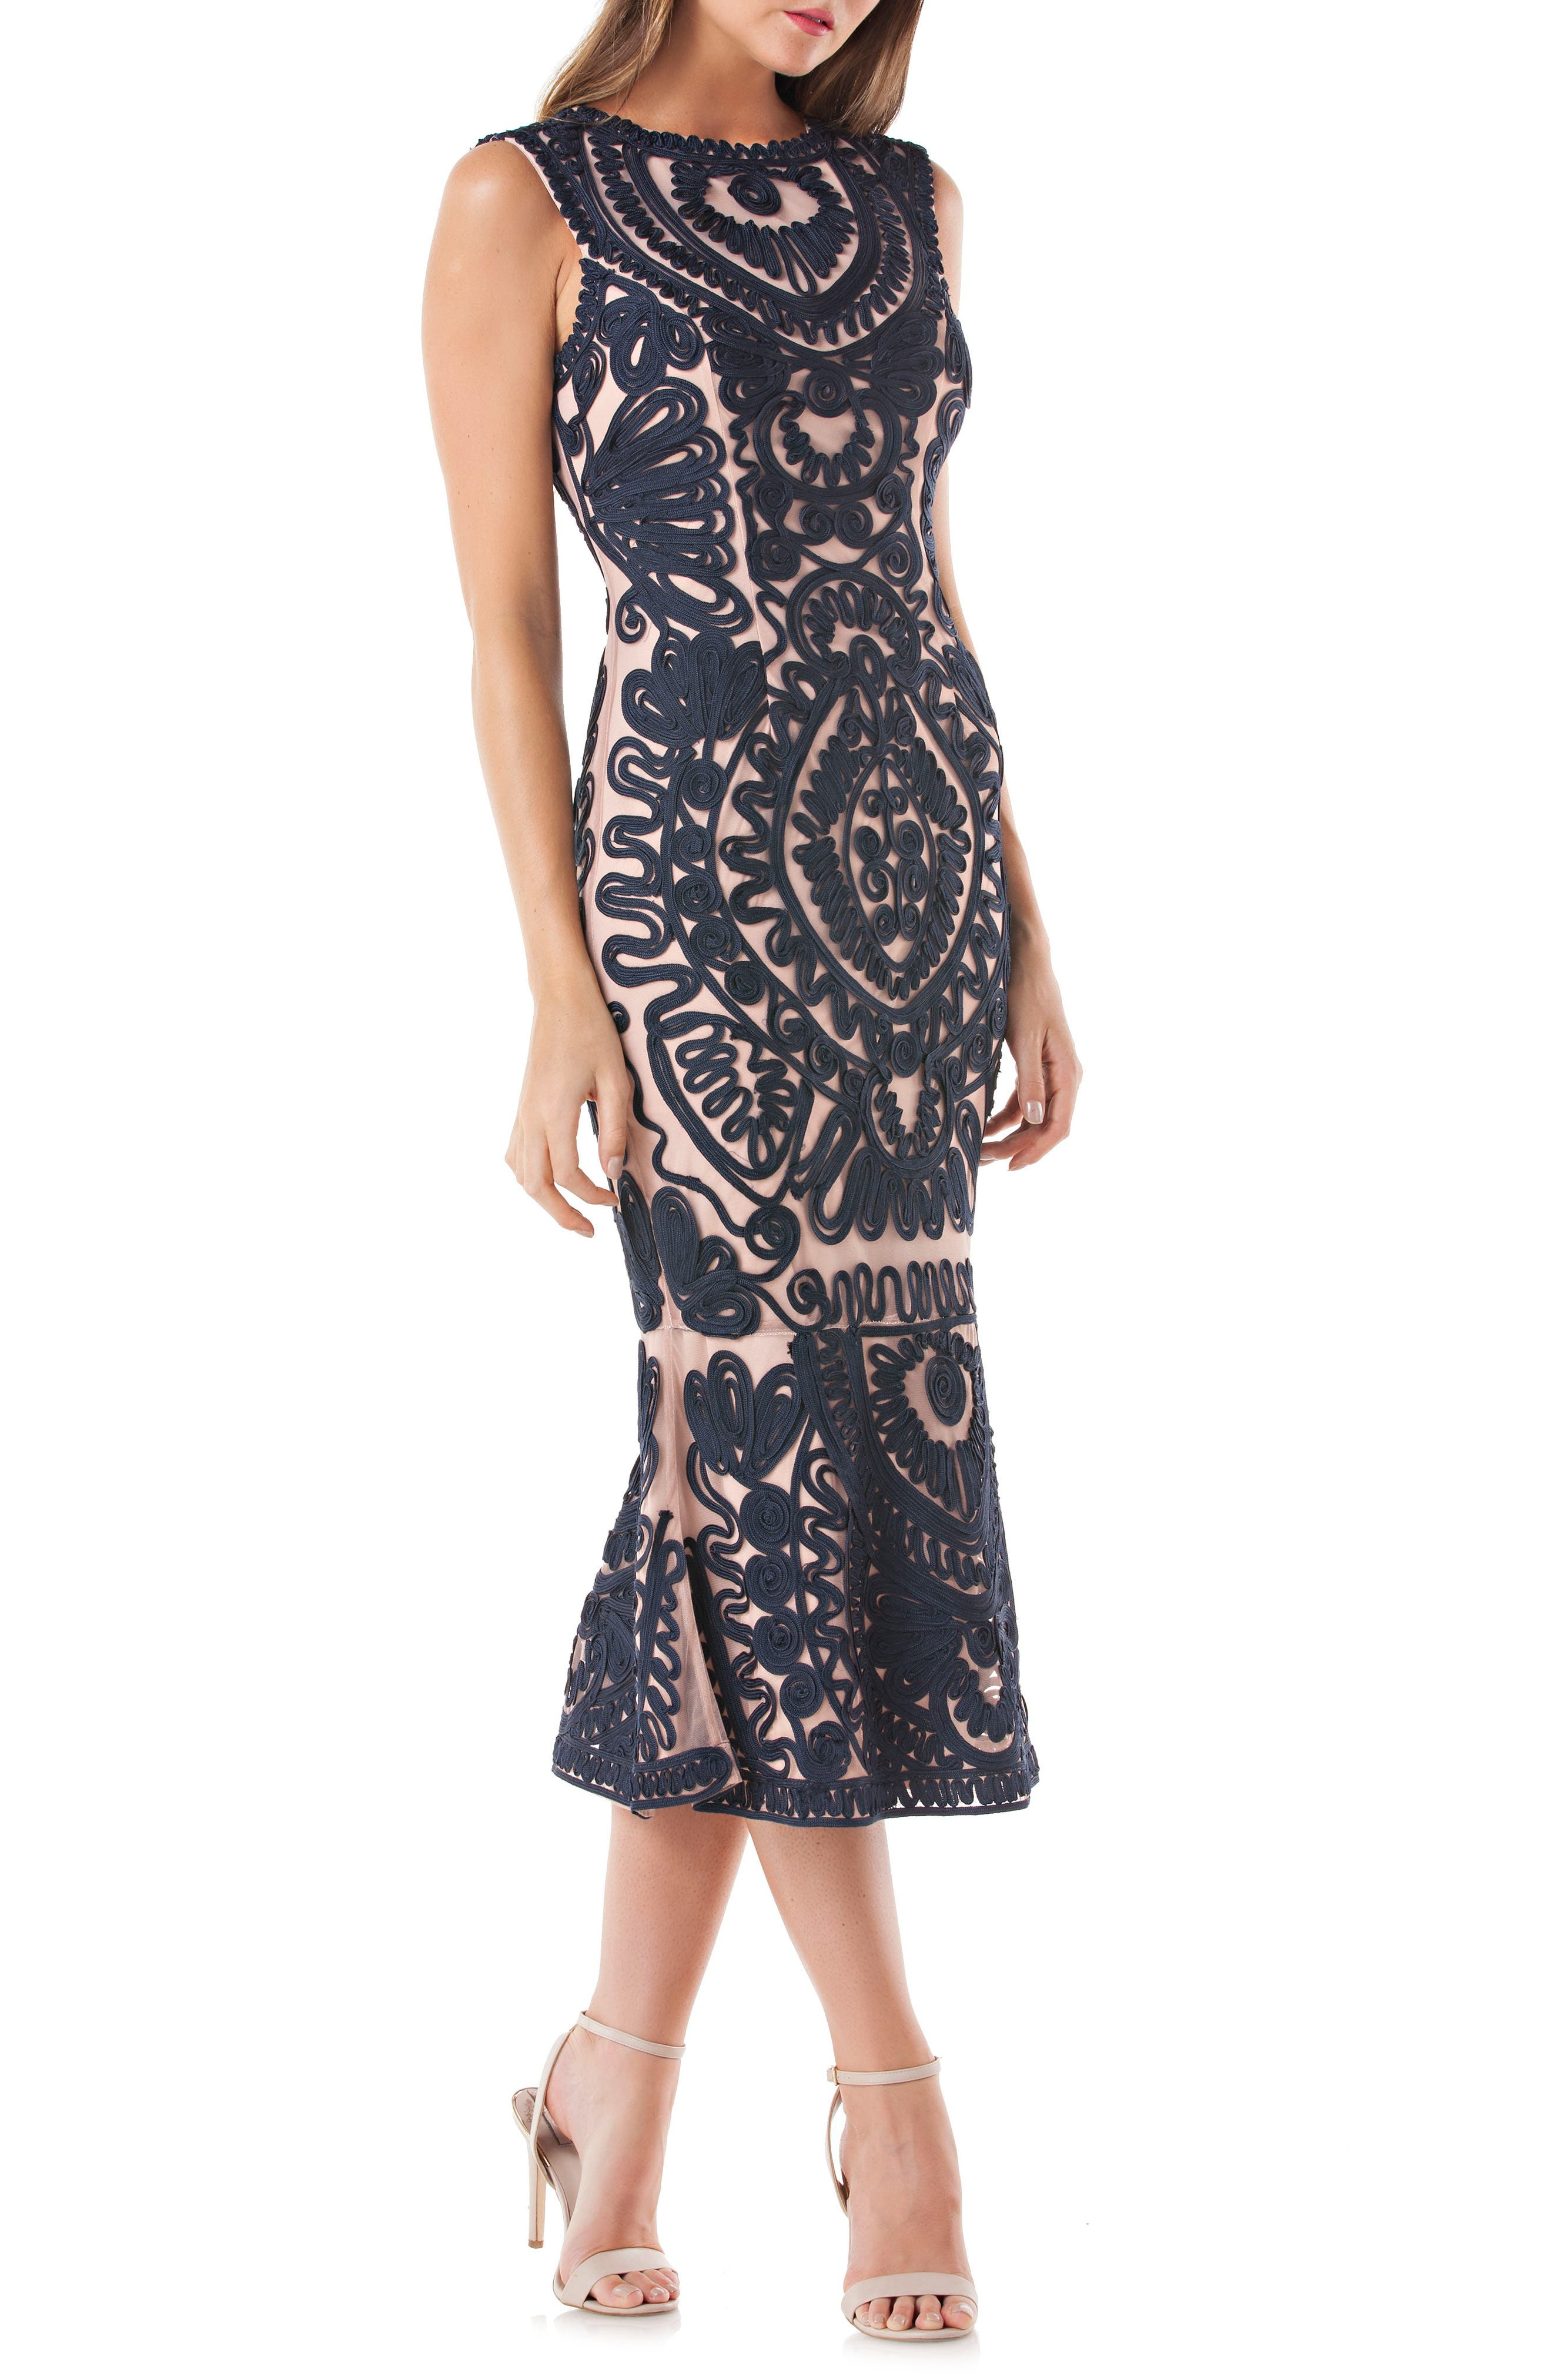 JS COLLECTIONS, Soutache Mesh Dress, Main thumbnail 1, color, NAVY/ NUDE